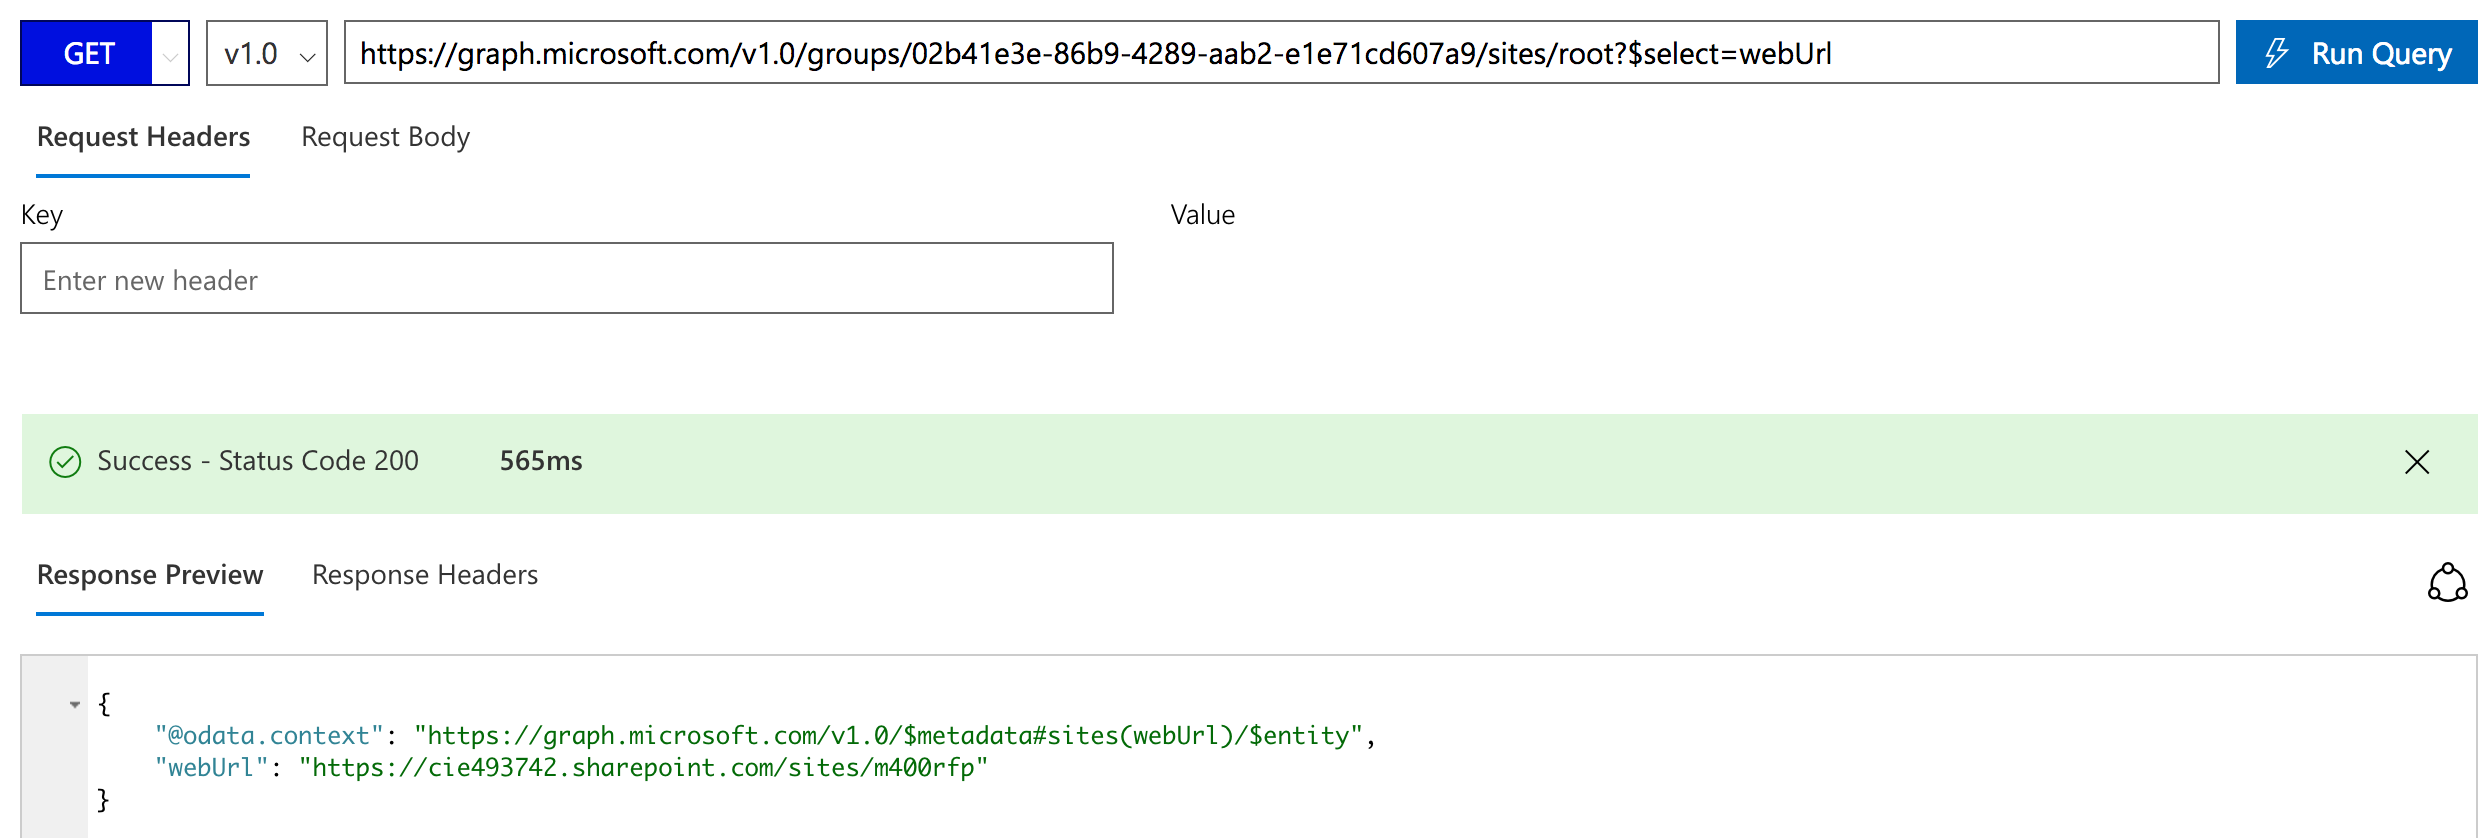 Get the SharePoint site behind an Office 365 Group via the